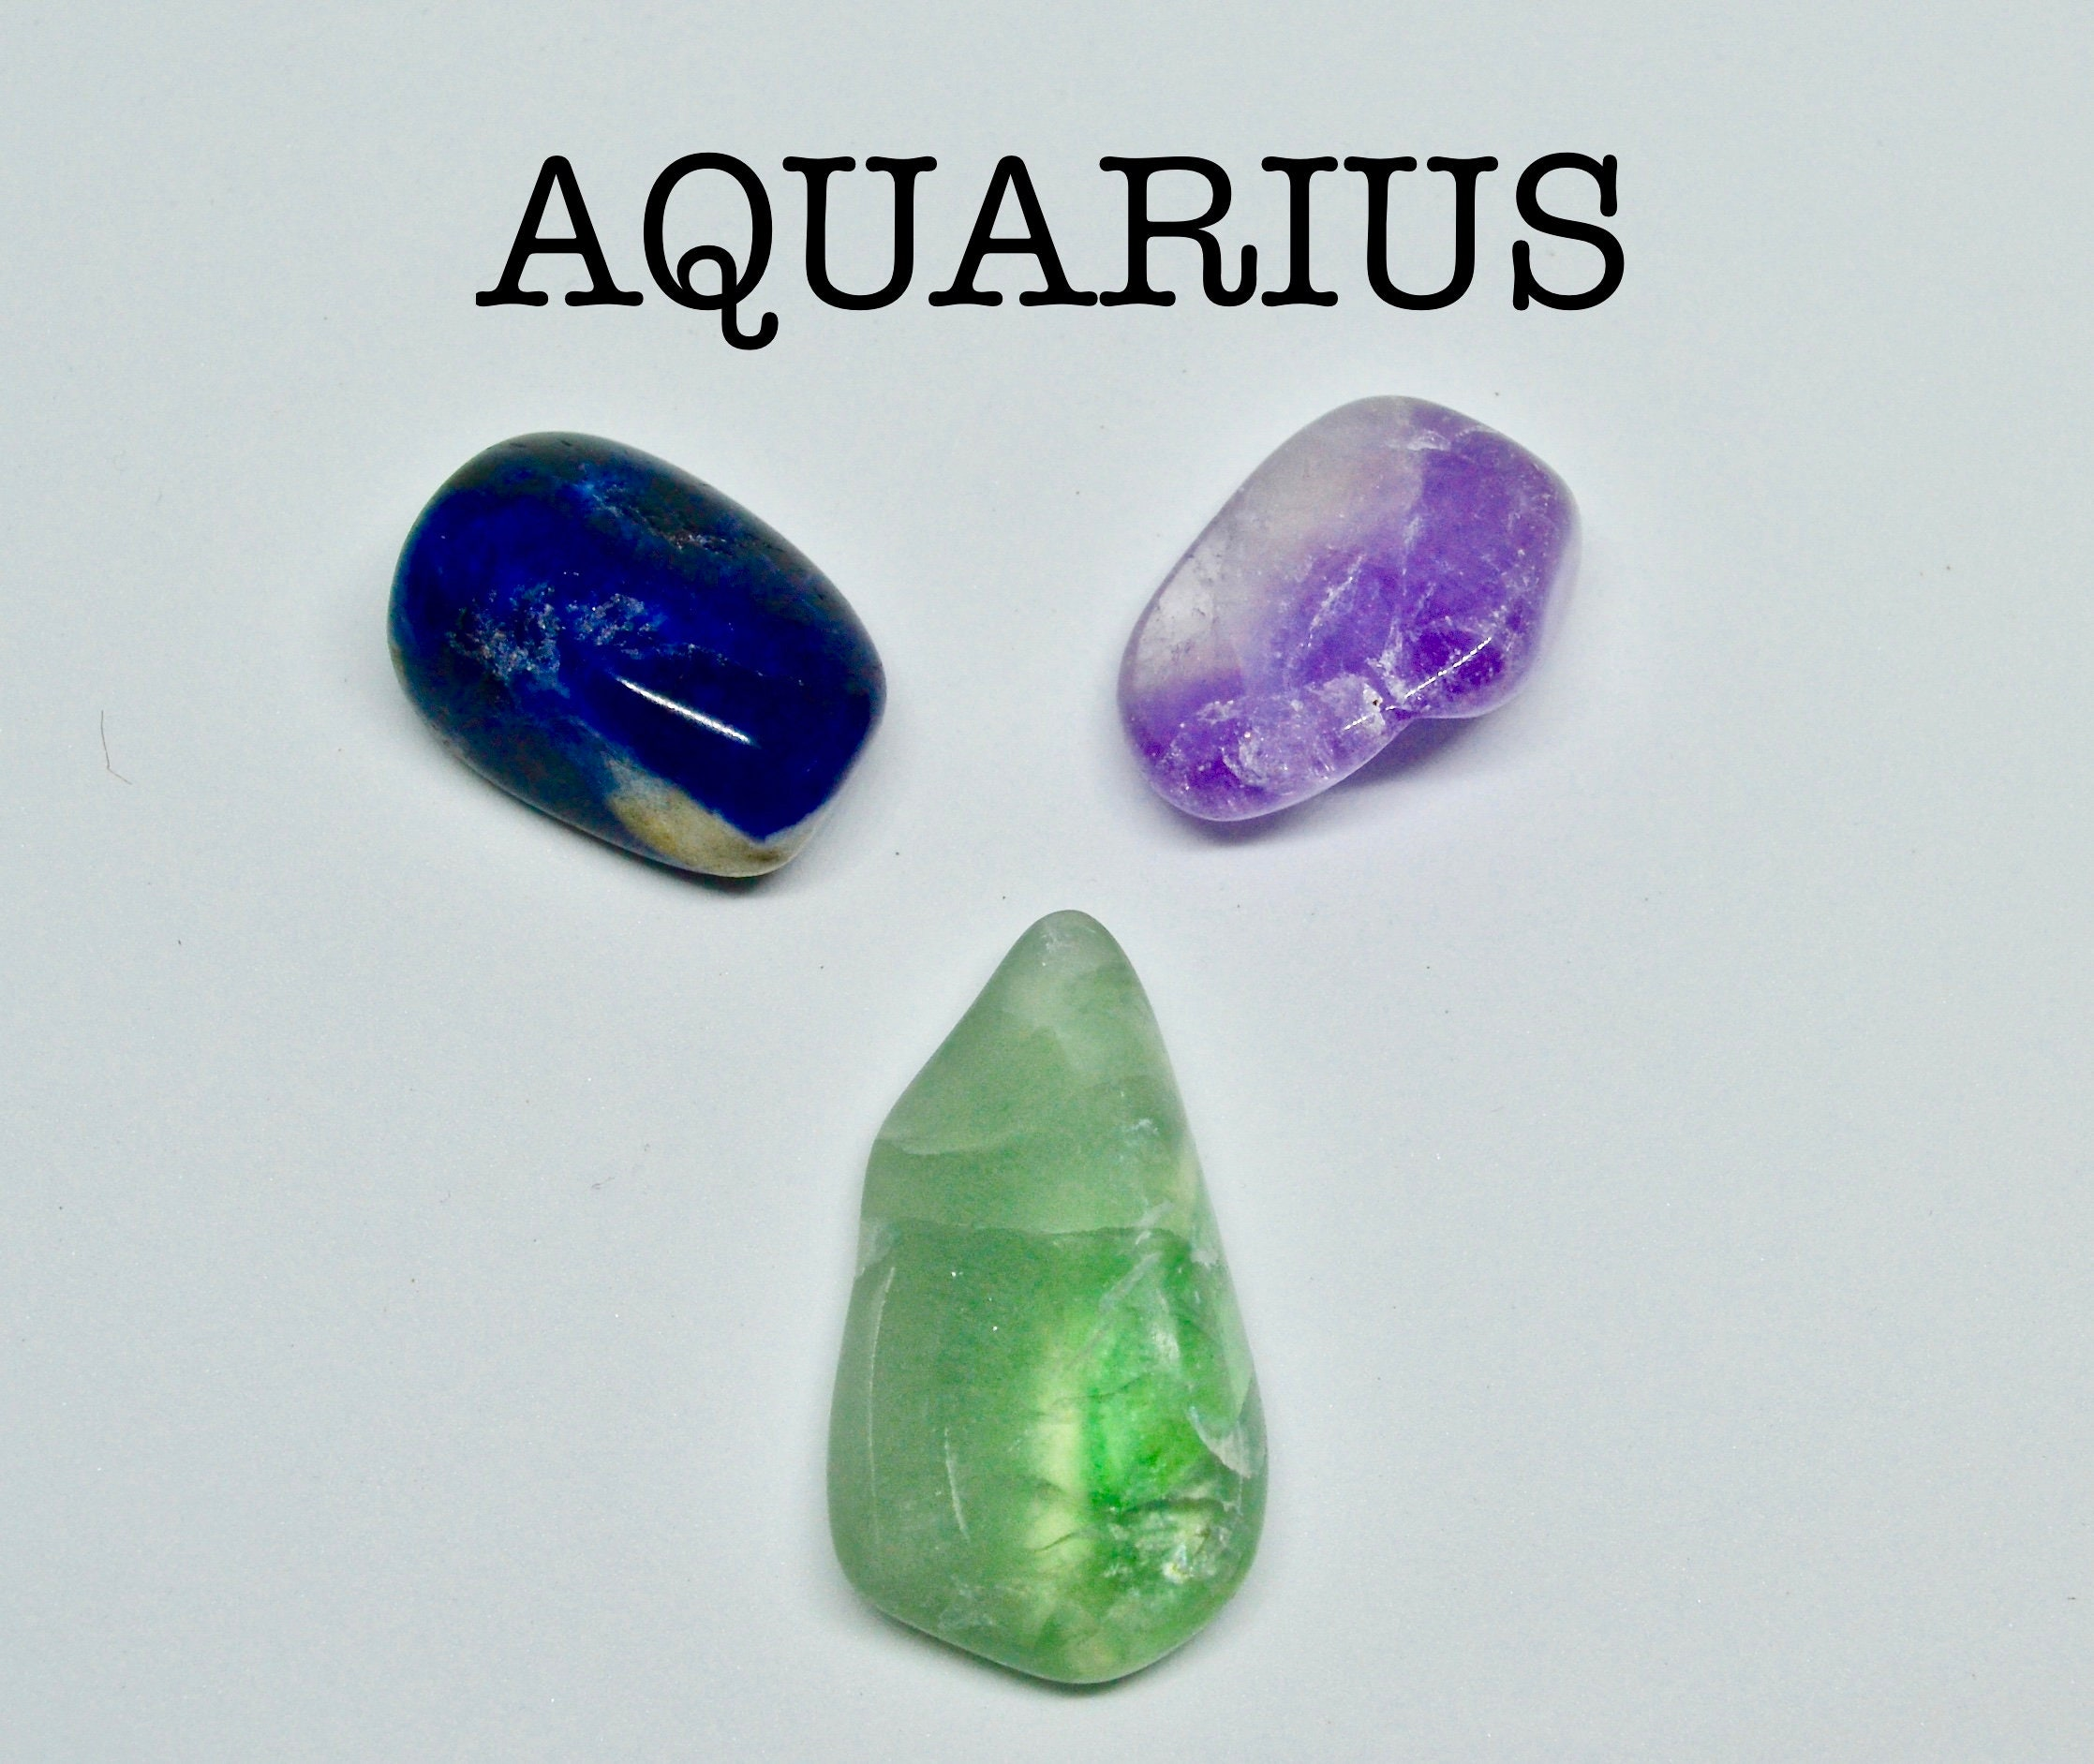 AQUARIUS crystals, star sign Aquarius, gift for Aquarius, astrology crystals, zodiac stones, birthstone, Fluorite, Amethyst, Sodalite, gift